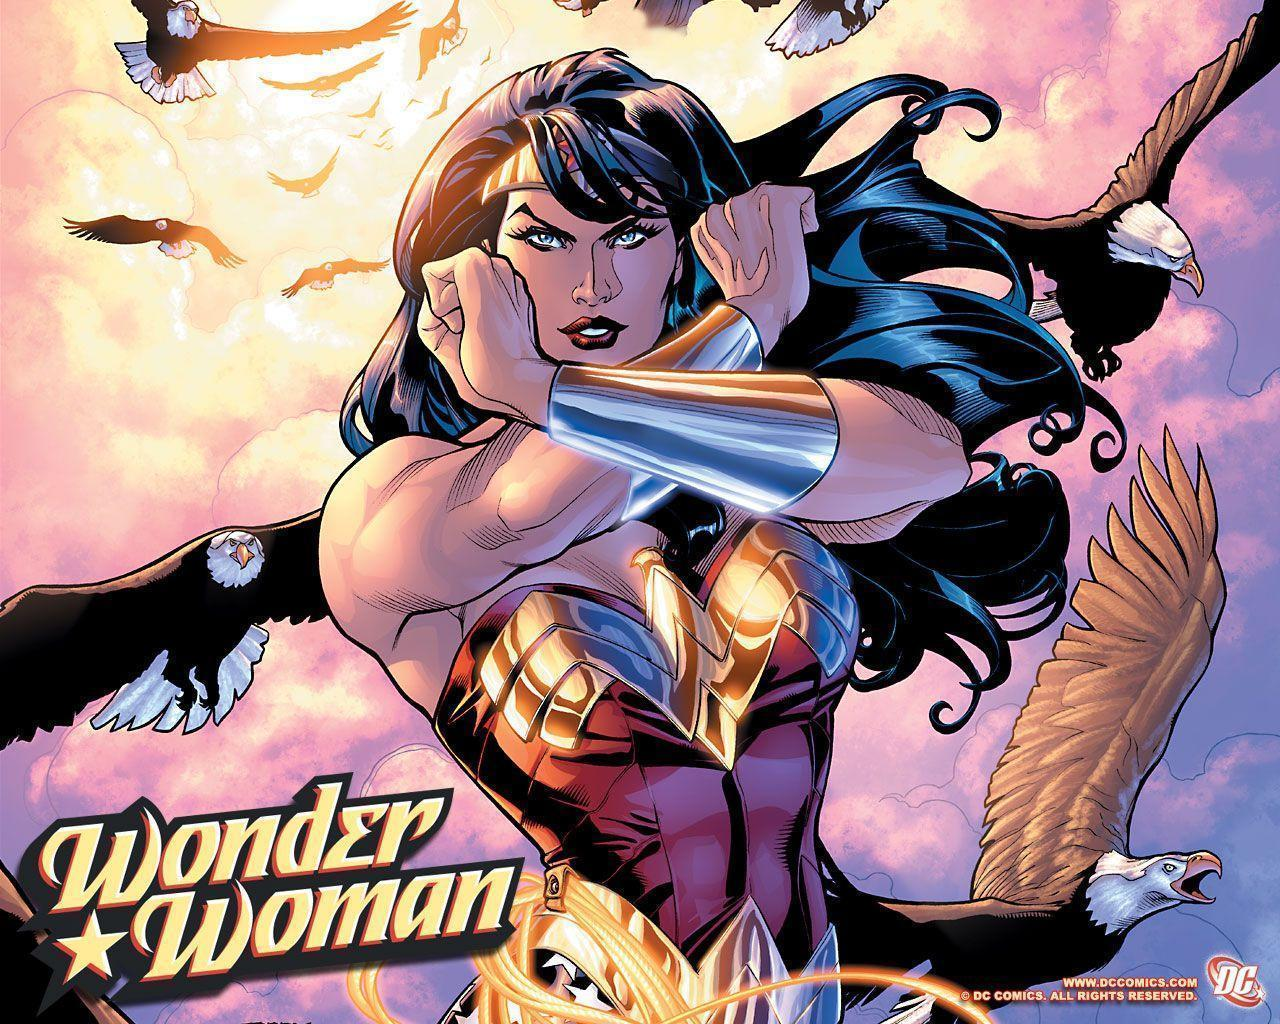 Wonder Woman Computer Wallpapers, Desktop Backgrounds | 1280x1024 ...